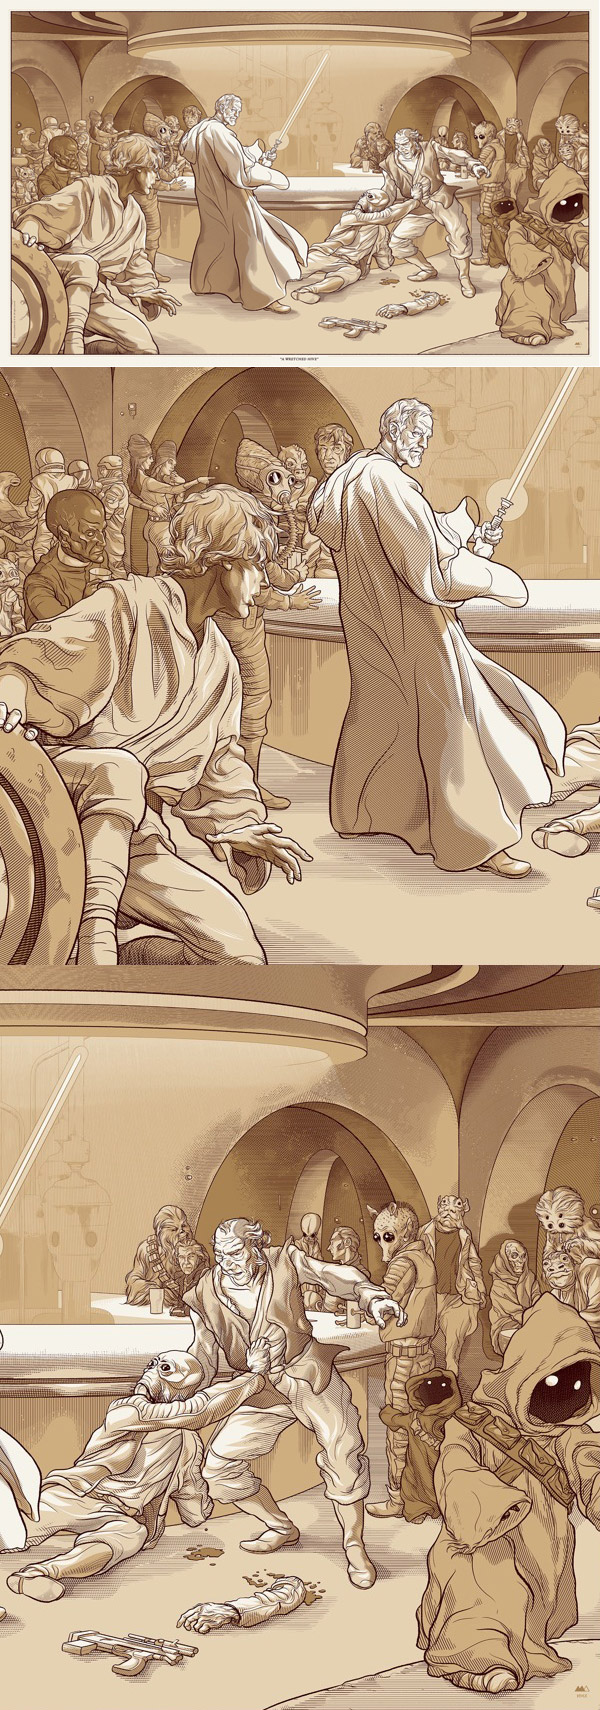 A Wretched Hive Star Wars Print by Martin Ansin